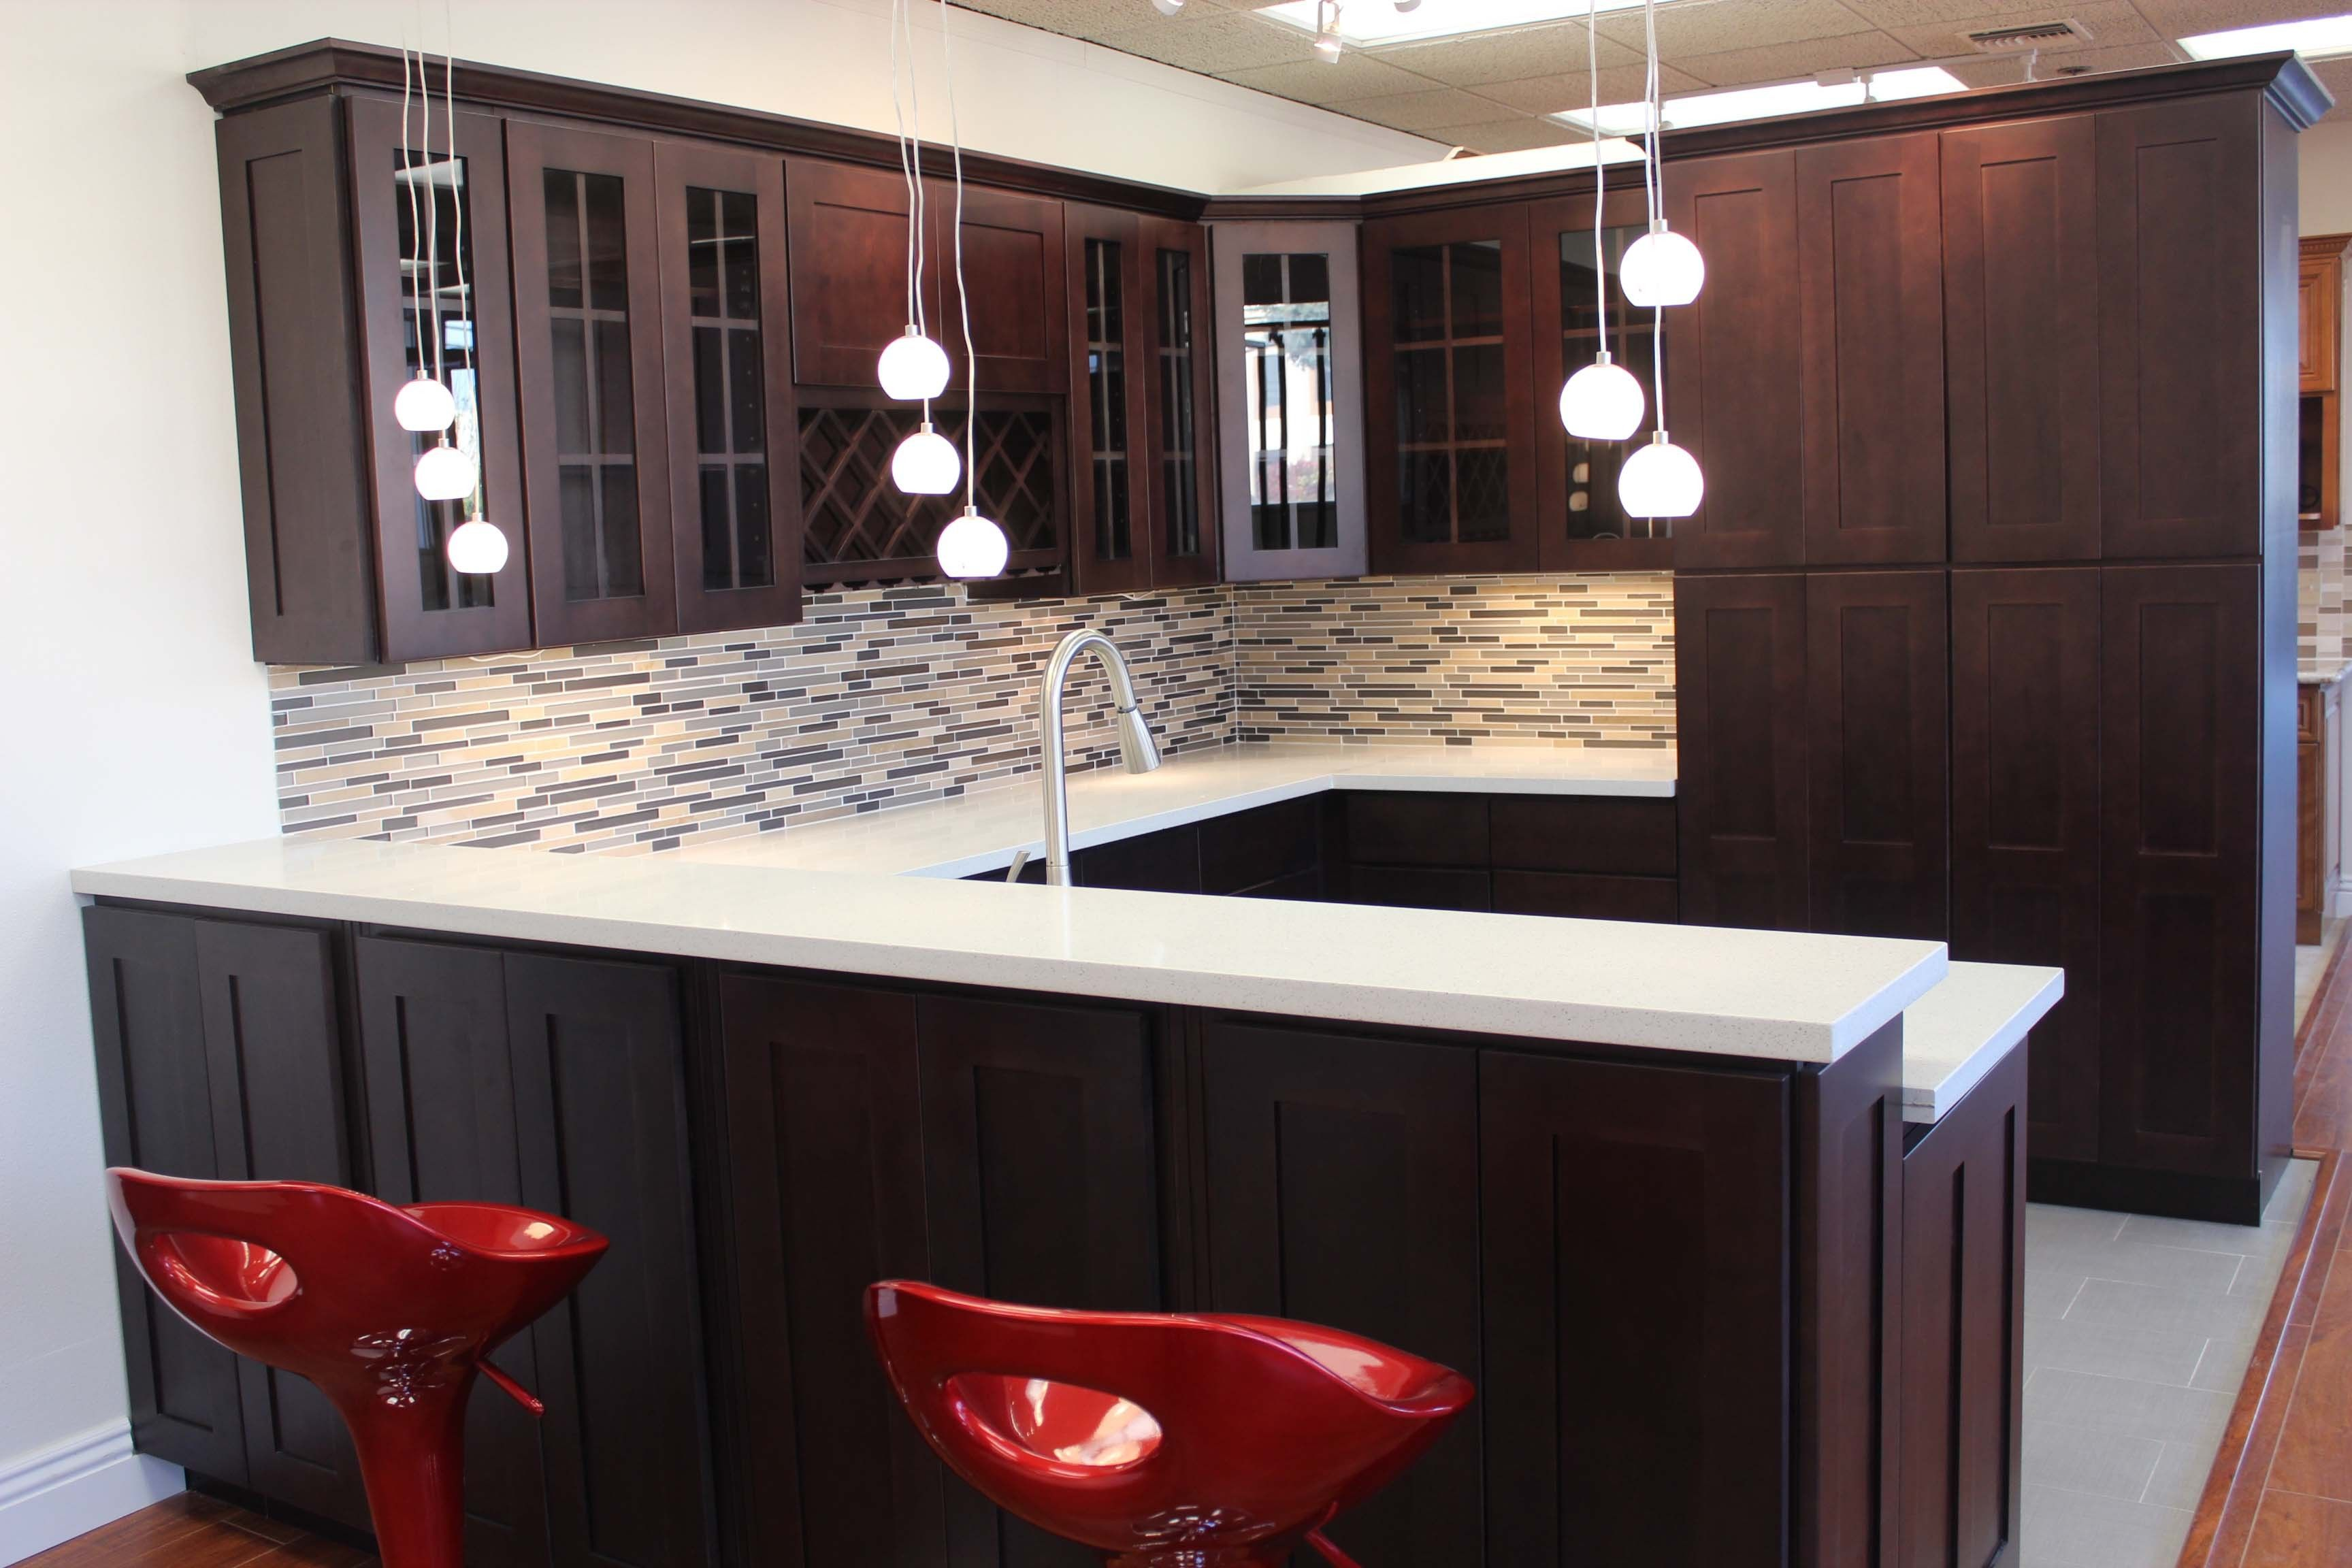 Chic White Small Glass Hanging Kitchen Lights Over Quartz Countertop Bar Island As Well Espresso CabinetsColored